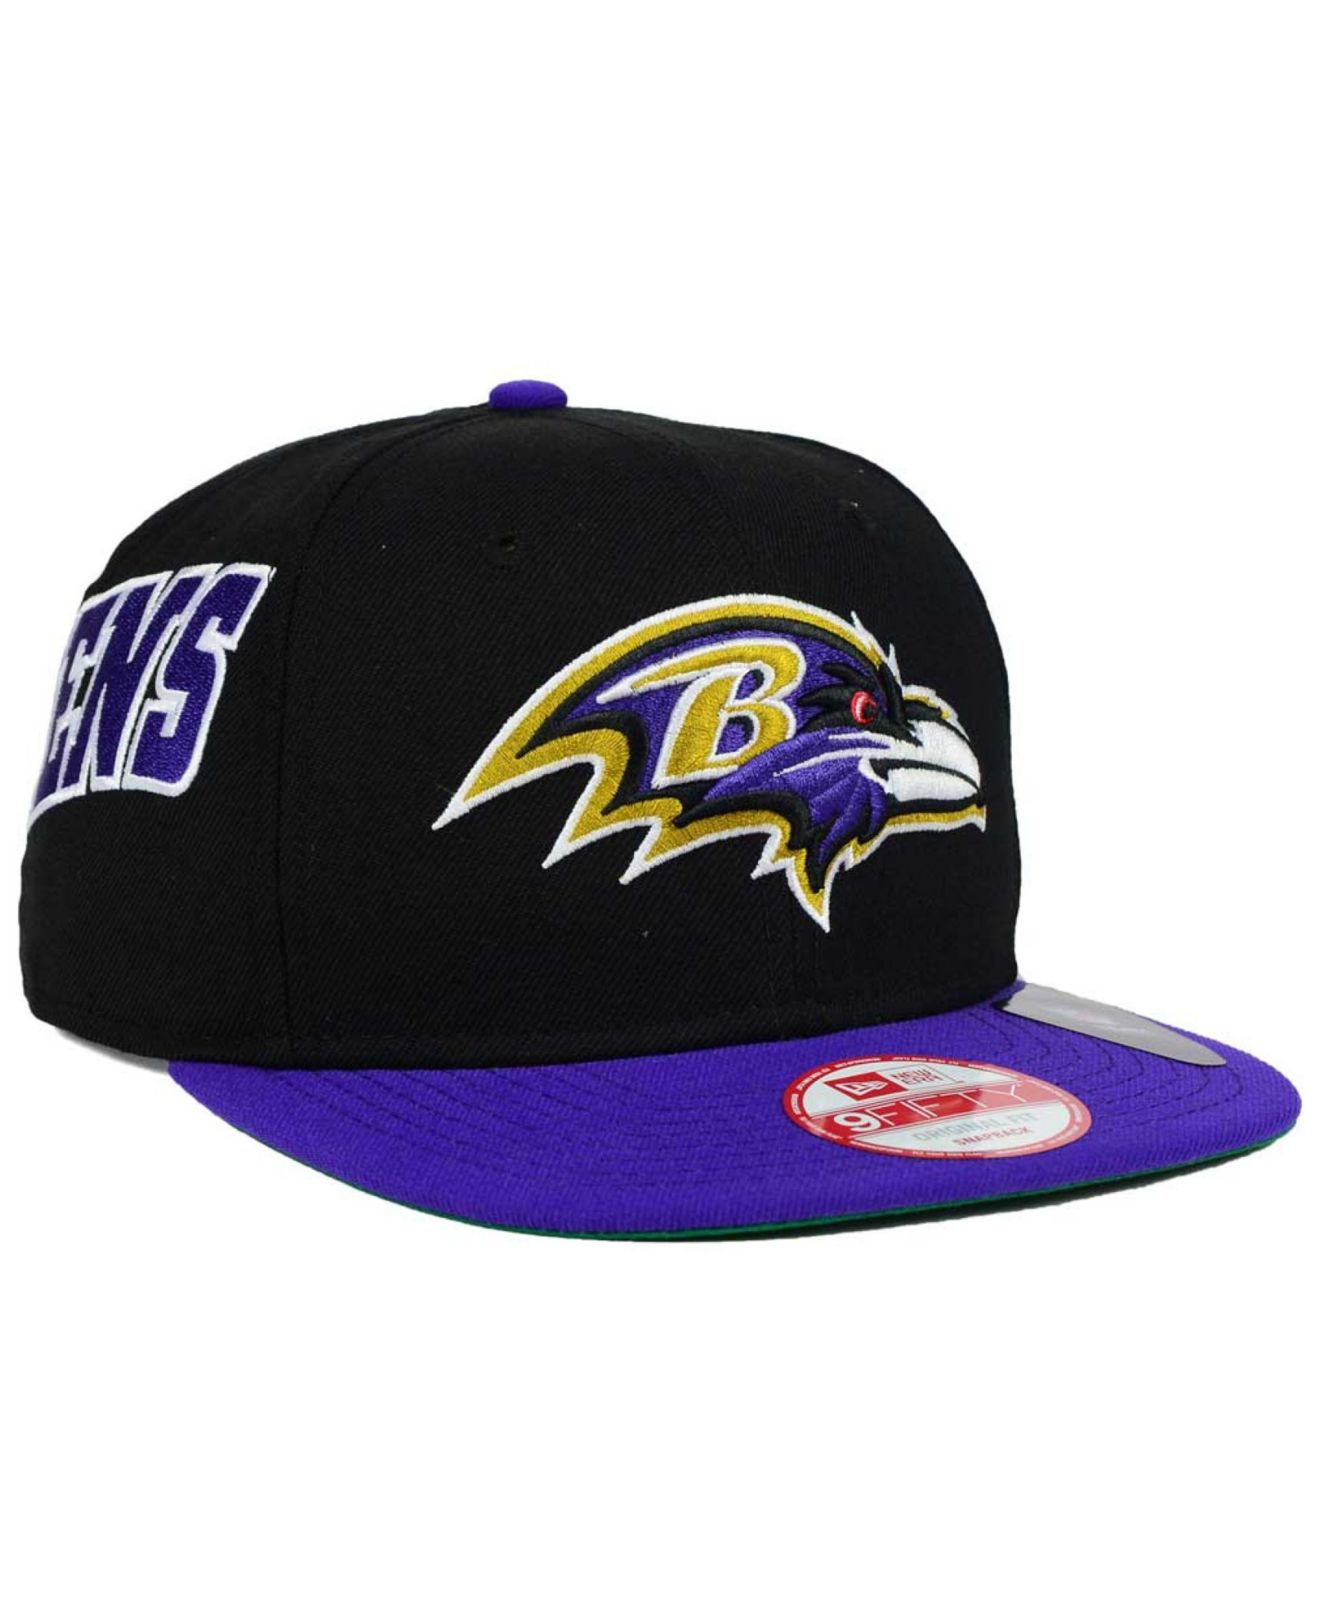 Lyst - Ktz Baltimore Ravens Swerve 9fifty Snapback Cap in Black for Men 0aab9a7c41f1